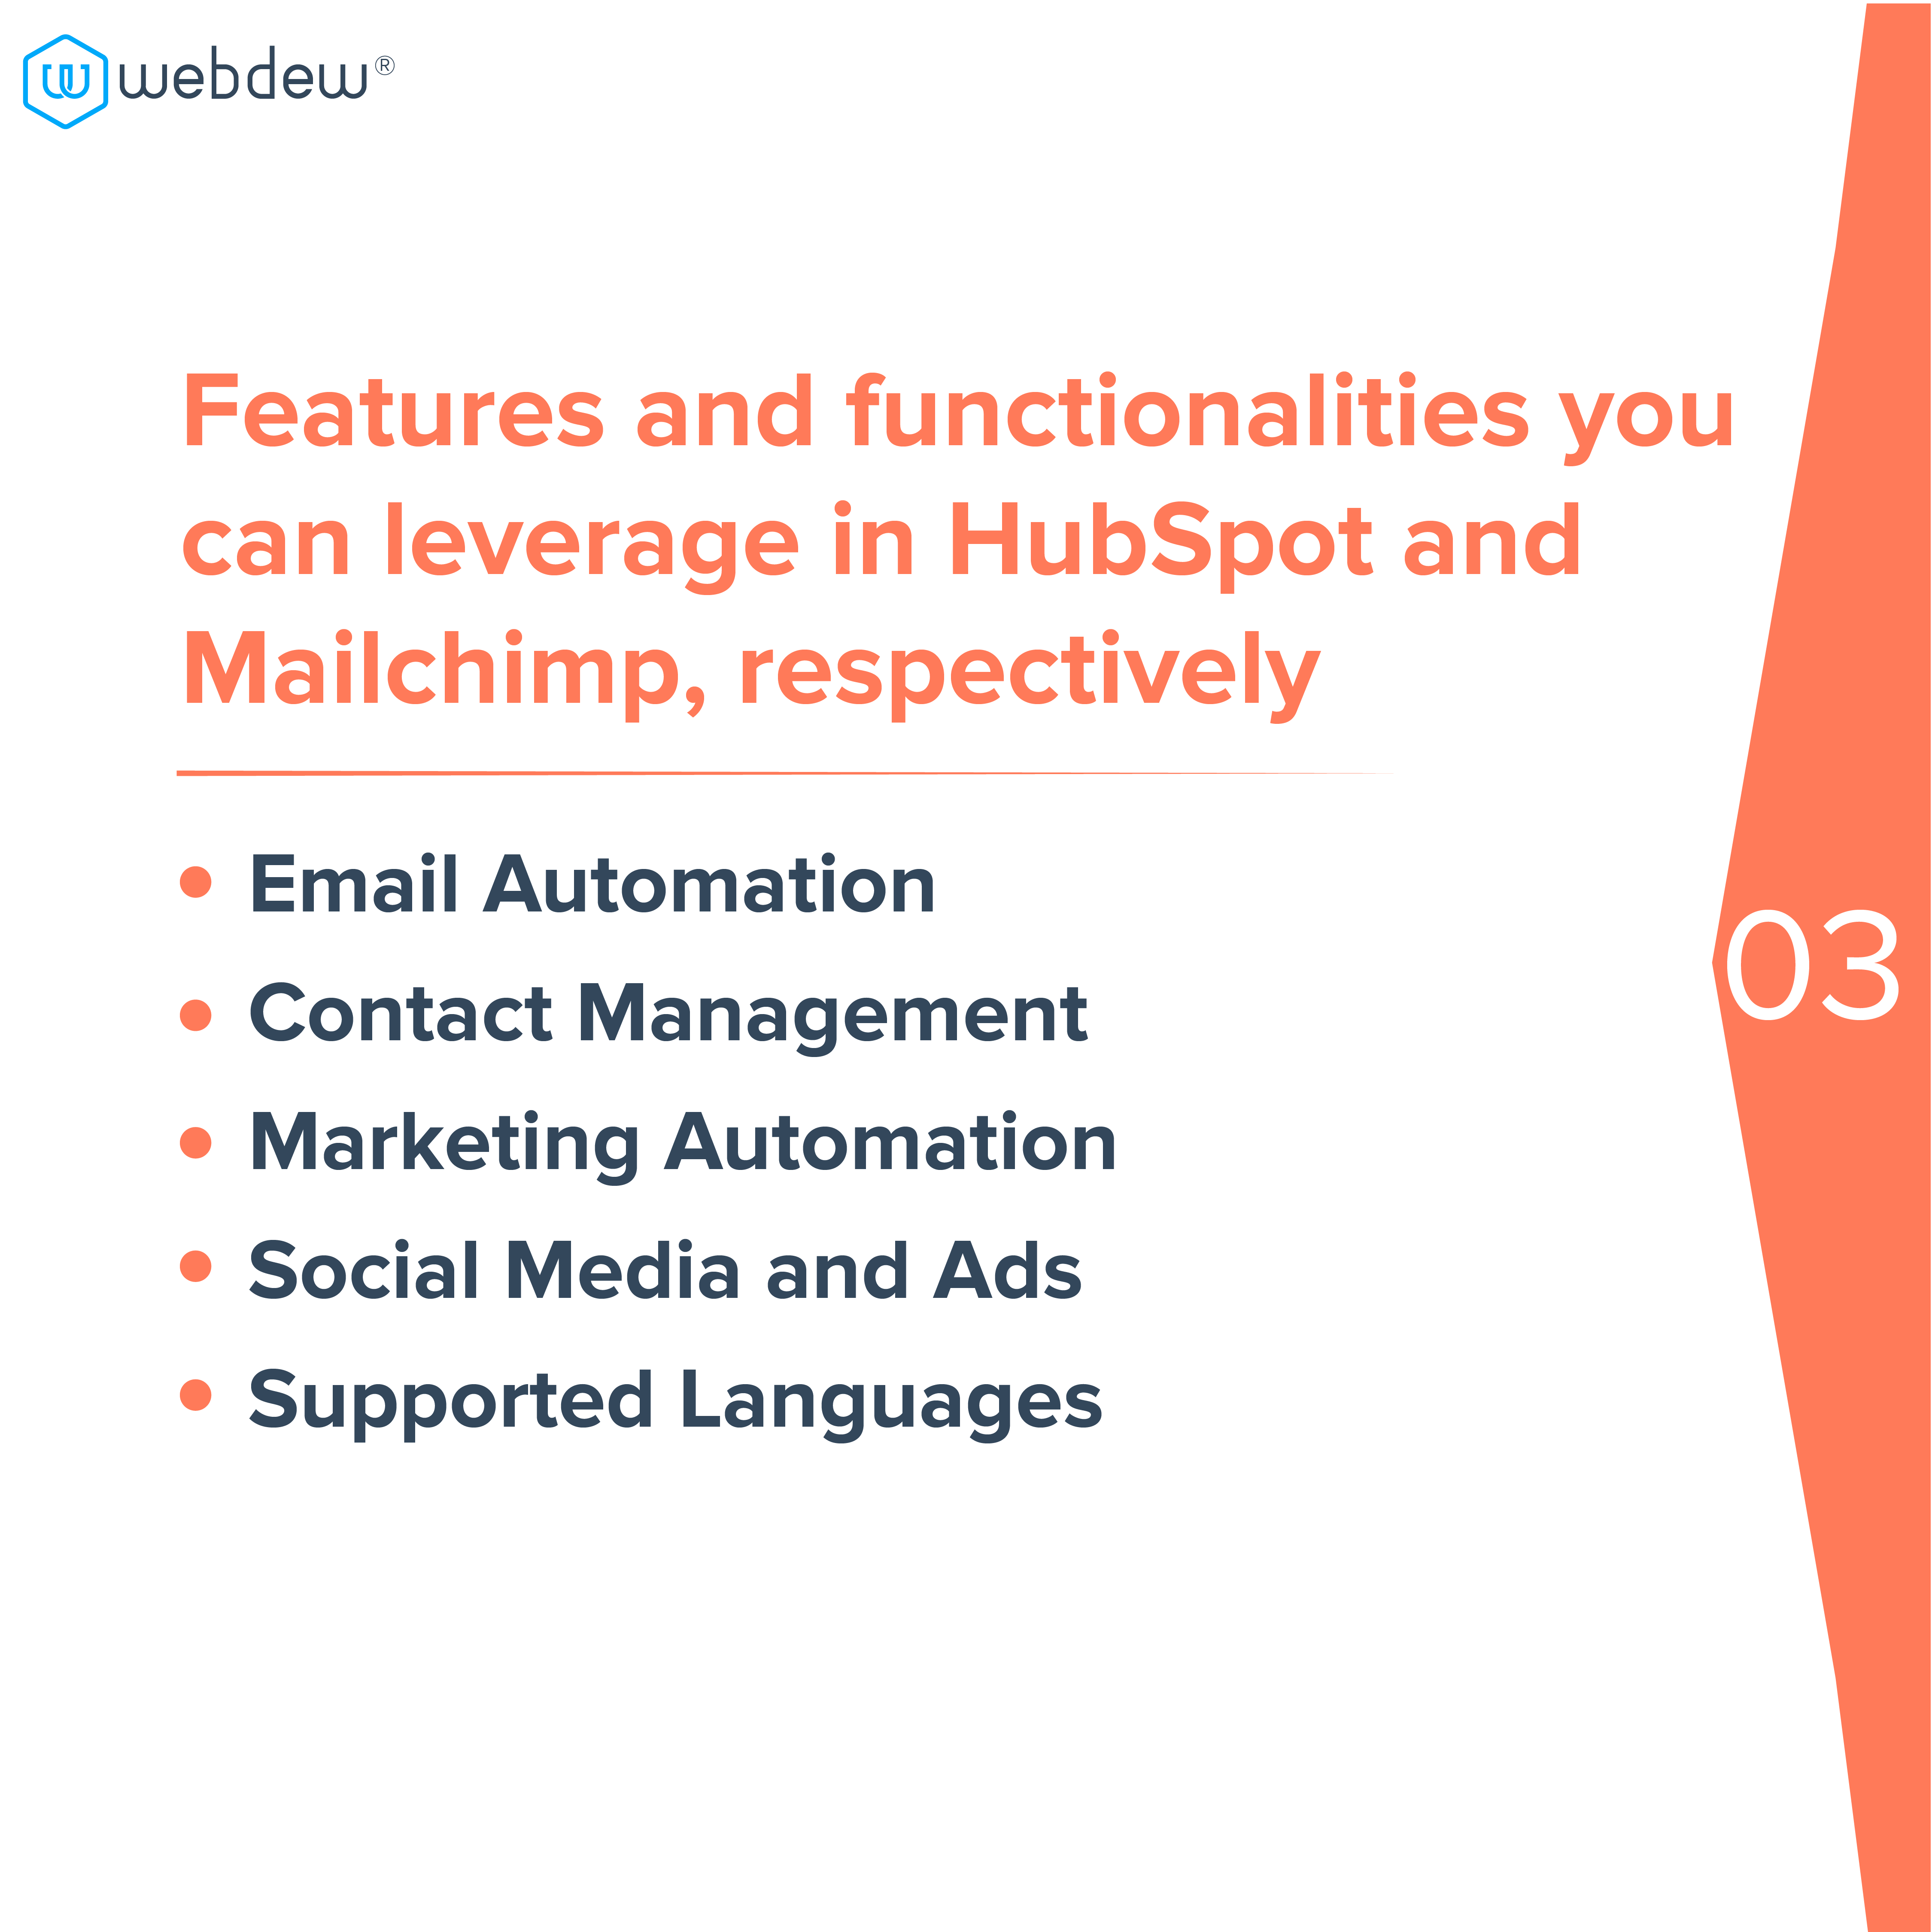 4. features and functionalities of hubspot and mailchimp